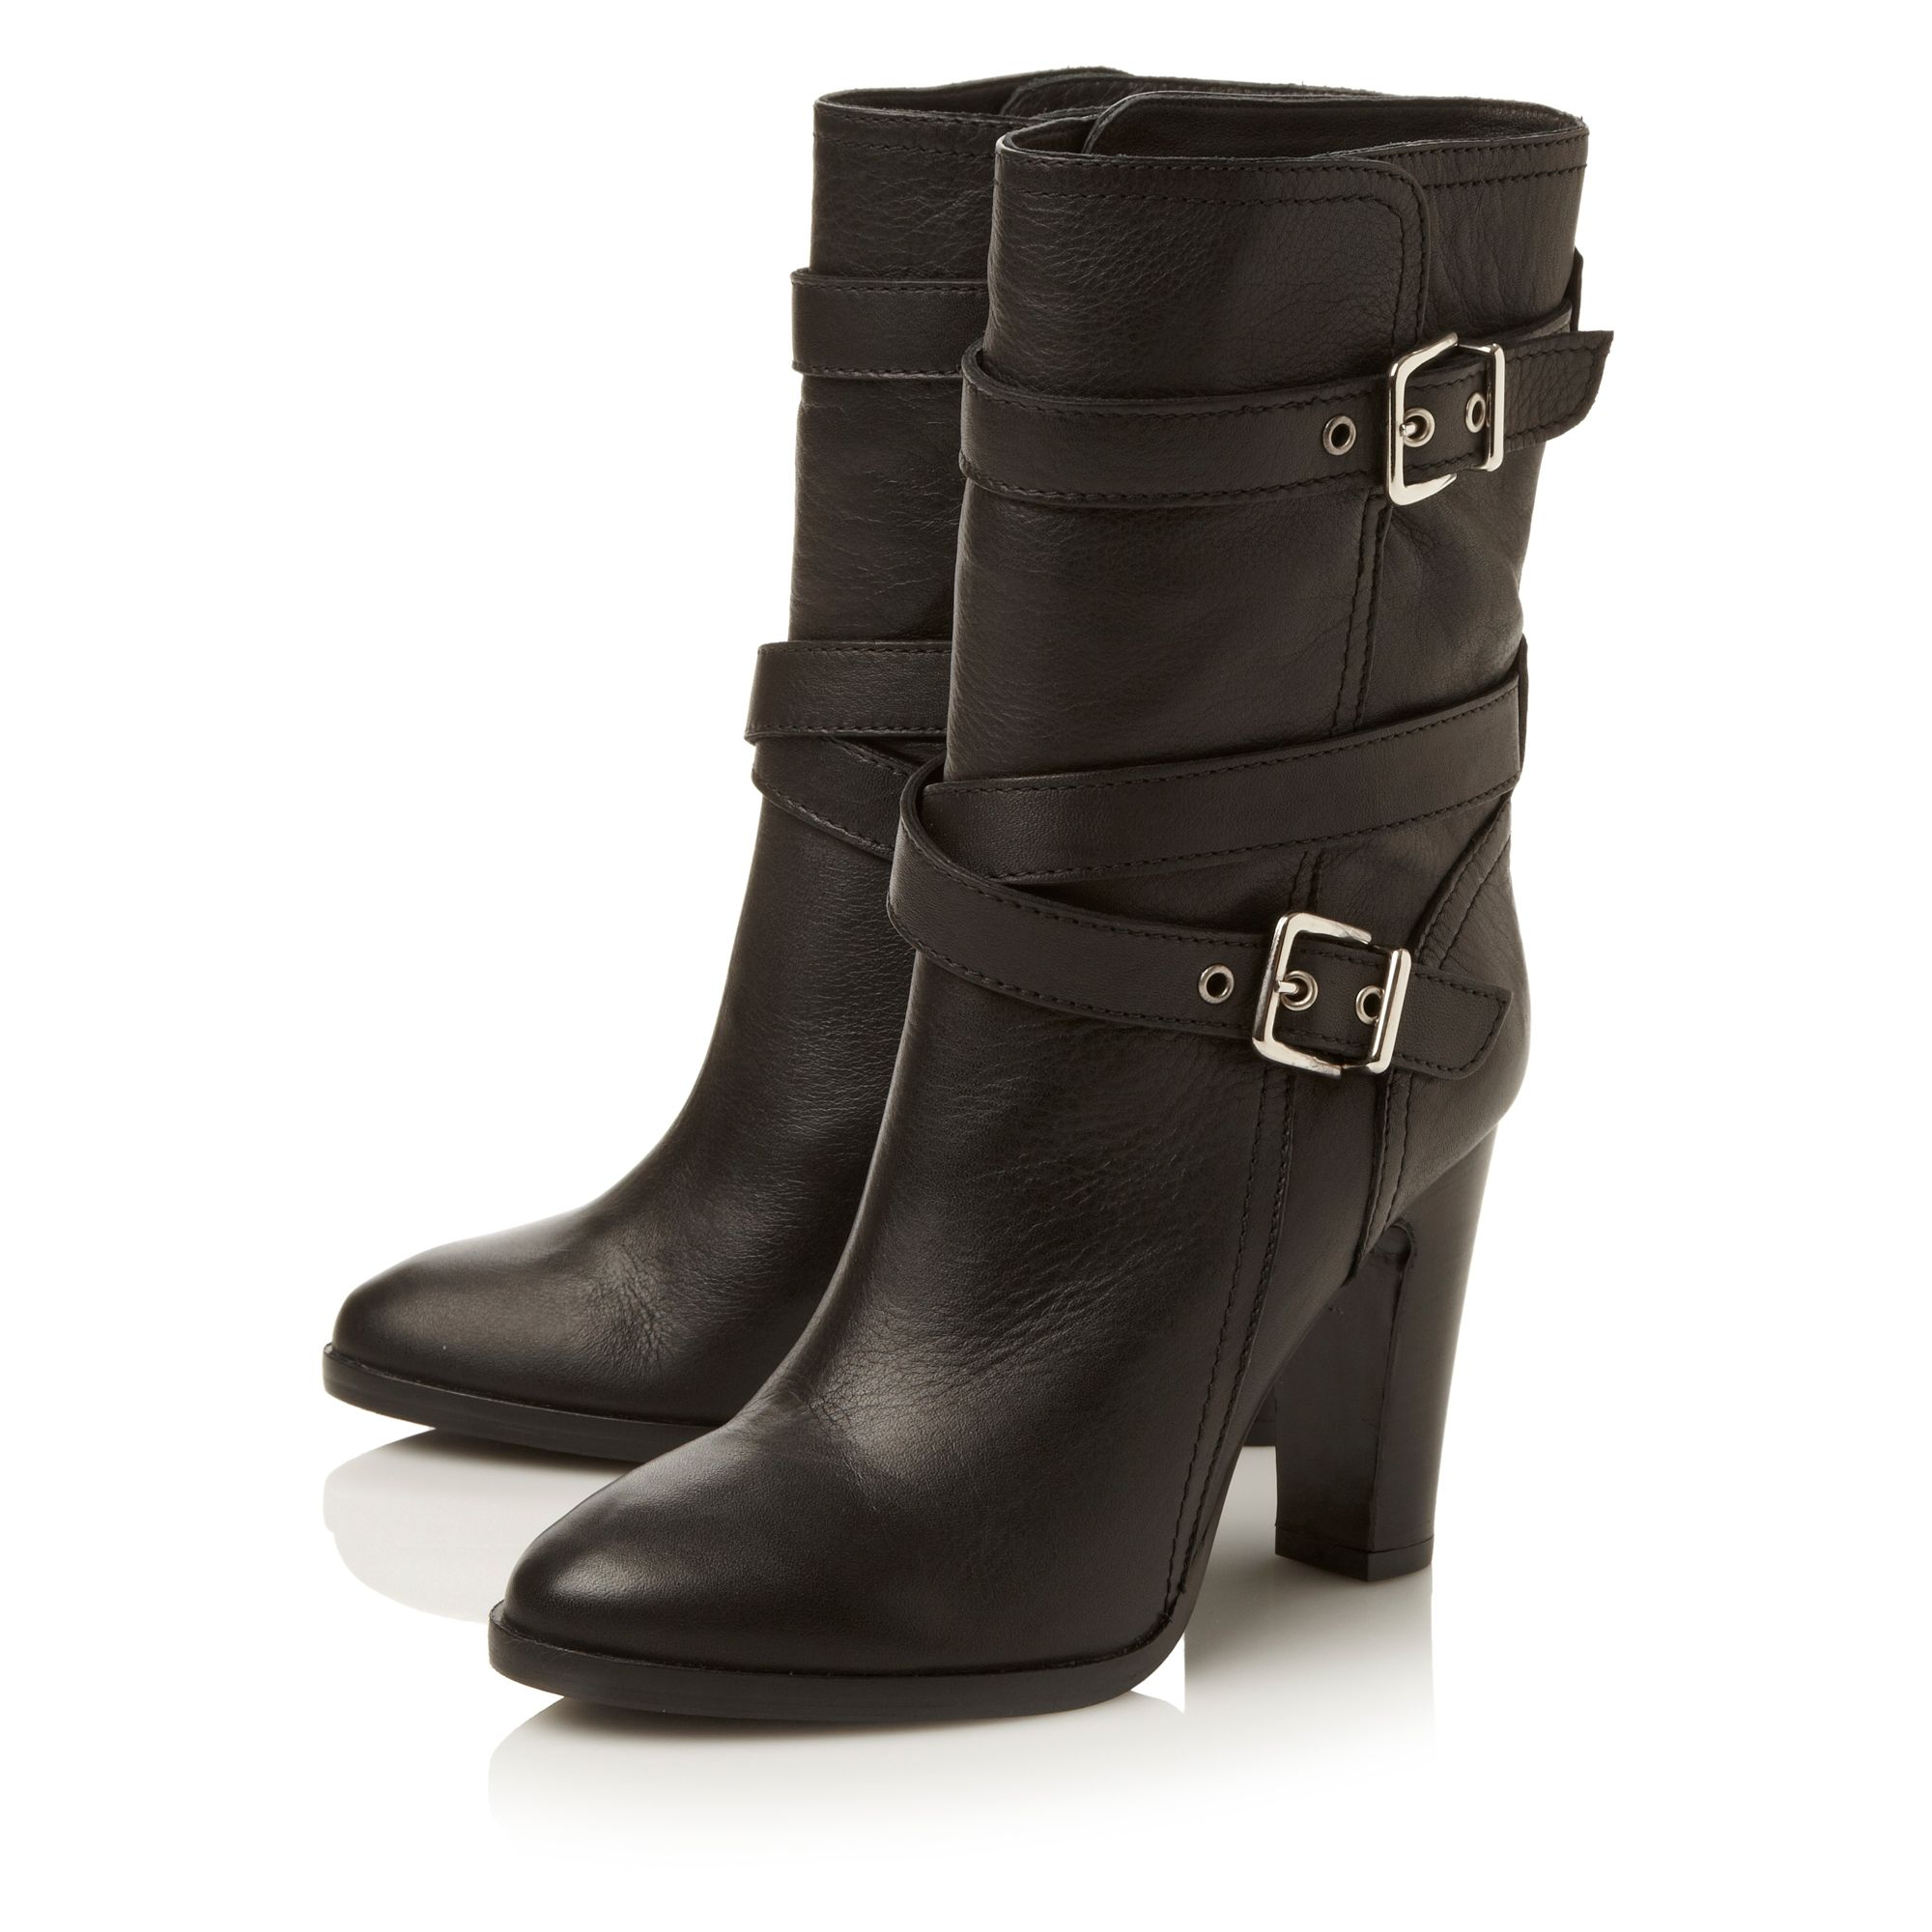 Rangelp simple calf dressy buckle boots